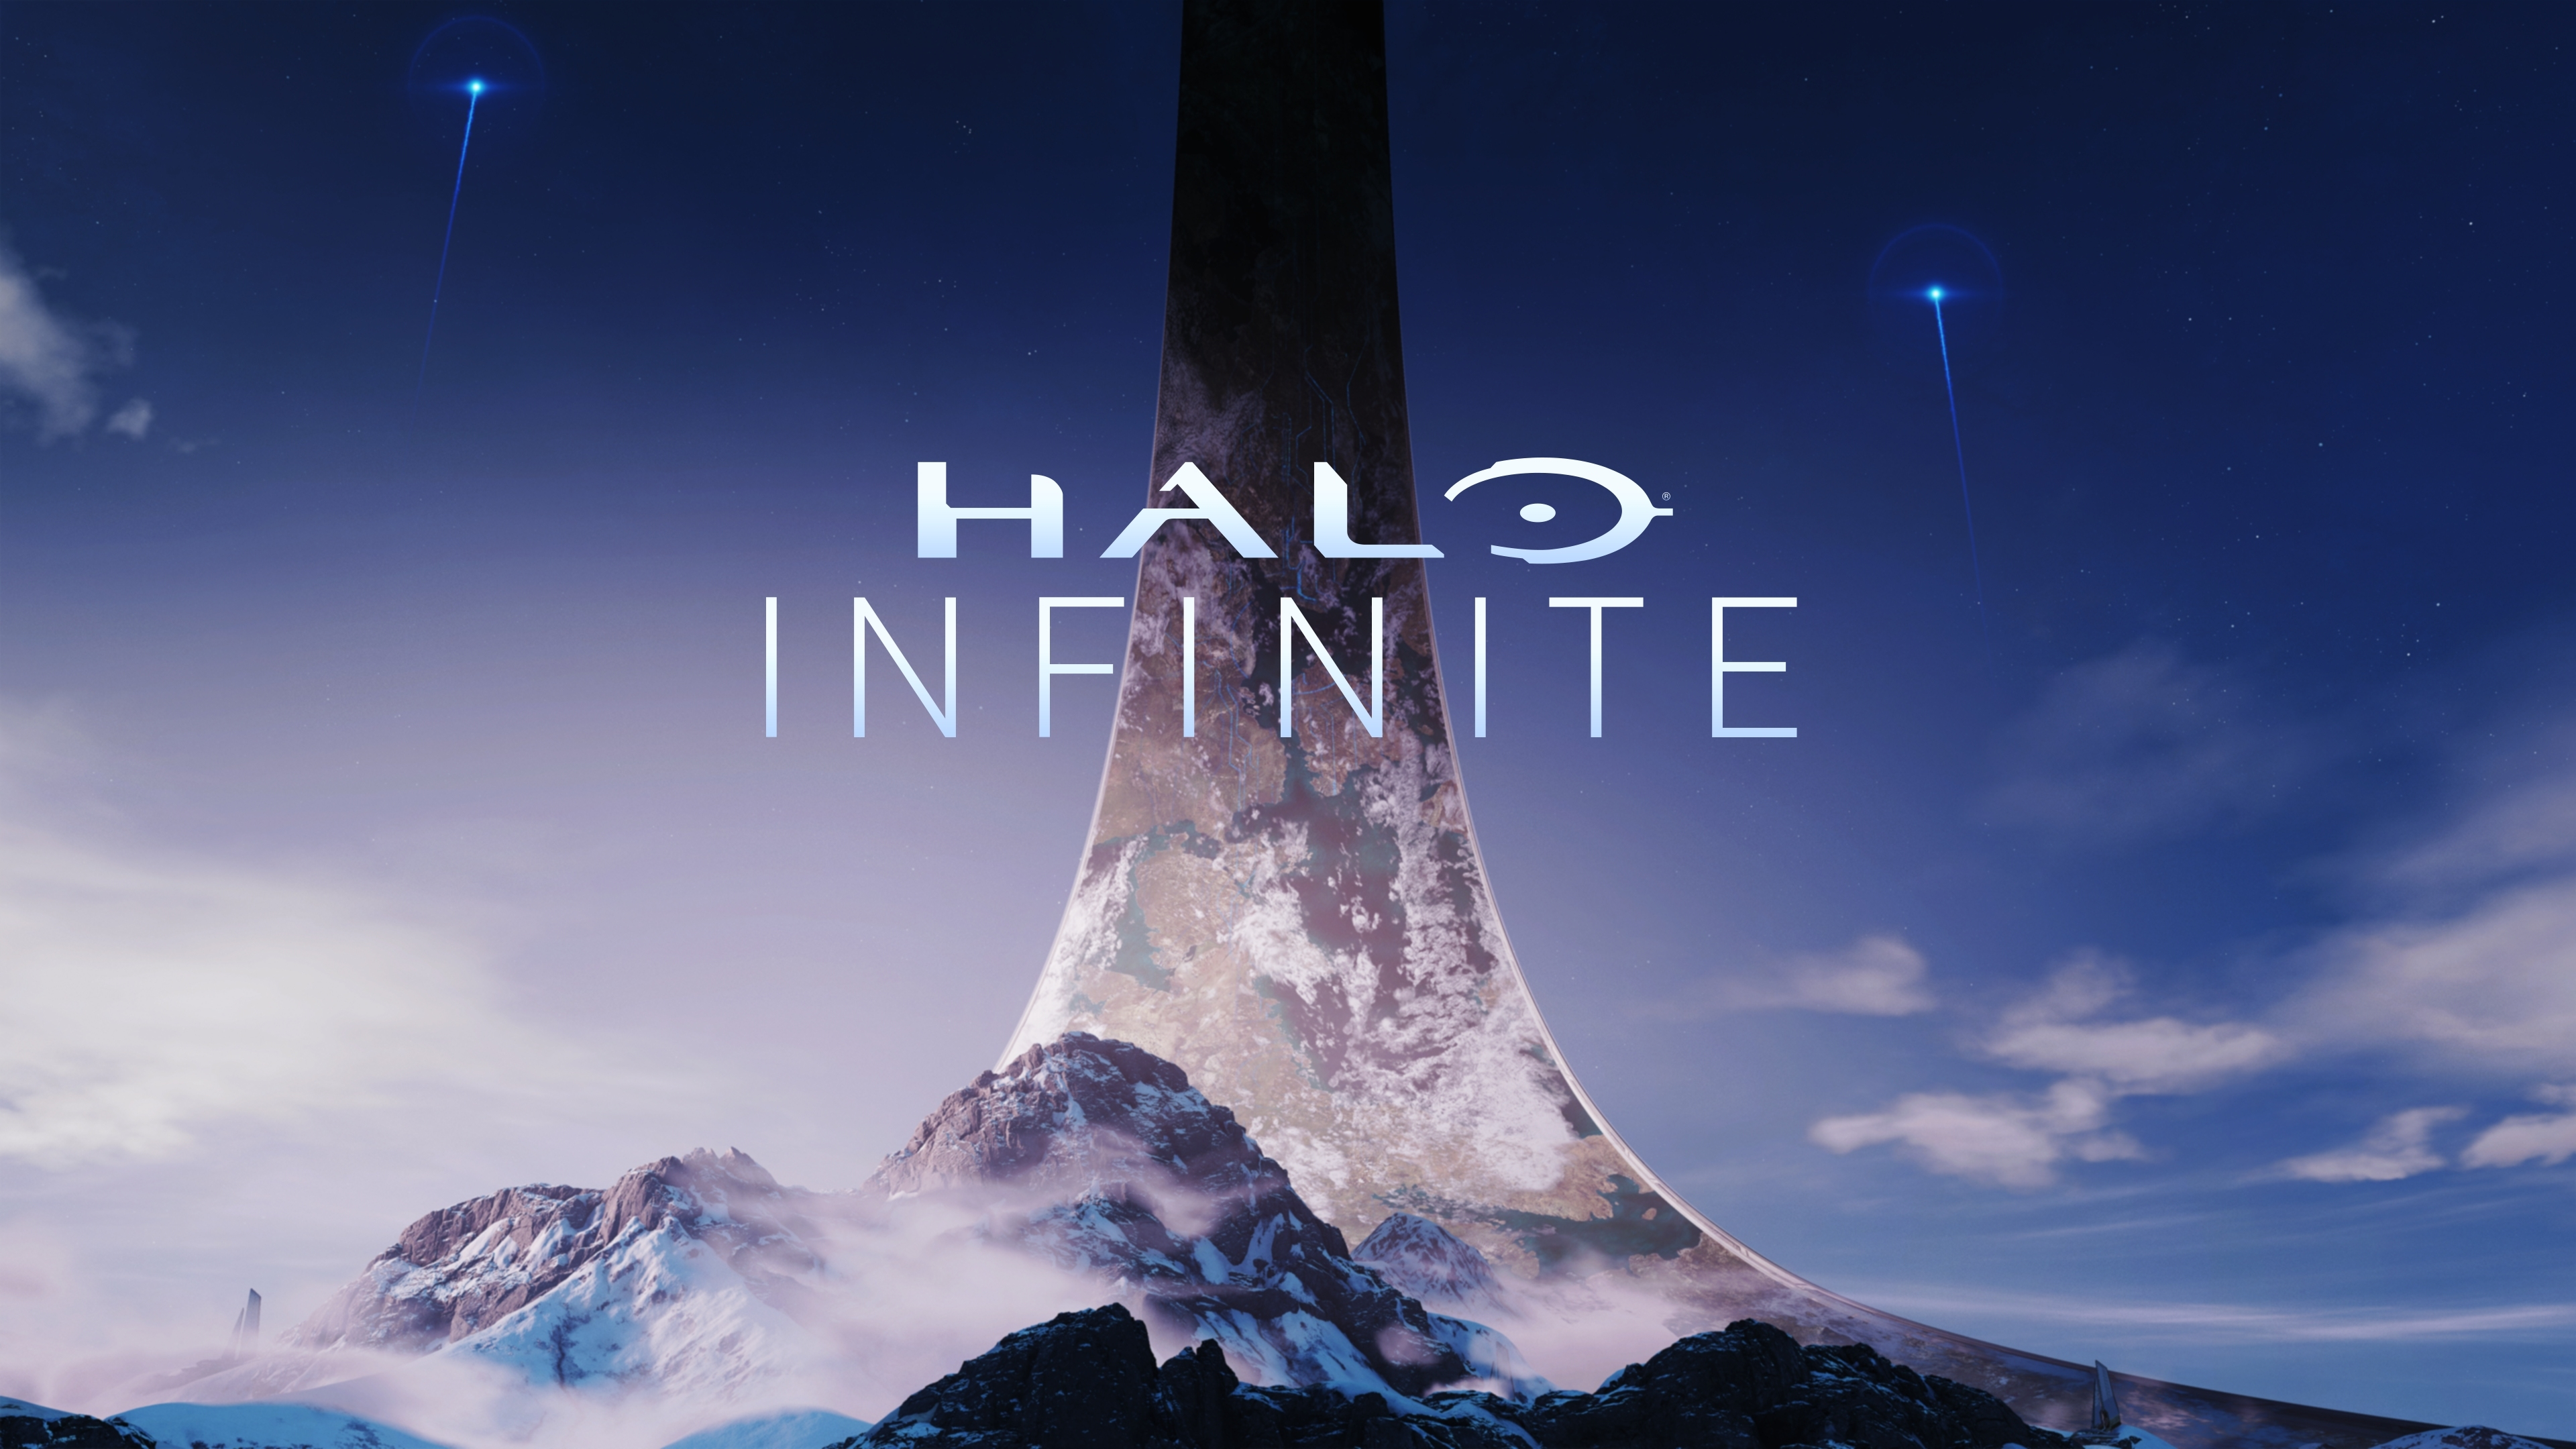 Halo Infinite Fondo De Pantalla 4k Ultra Hd Id3174